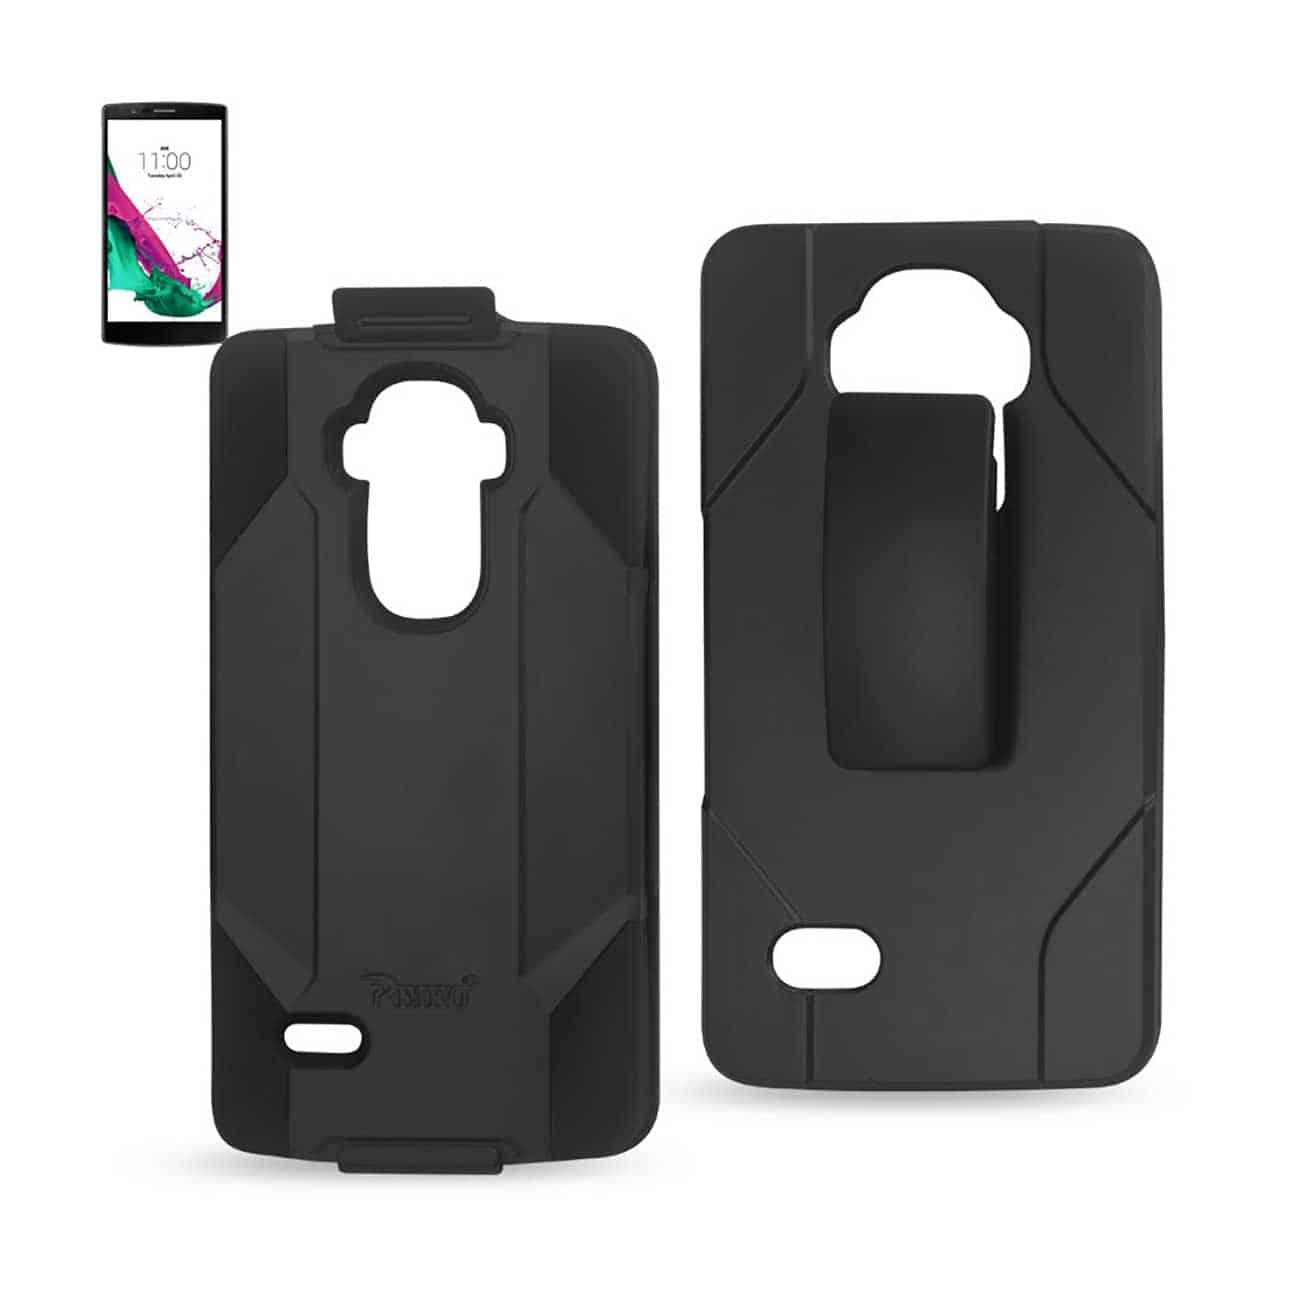 LG G4 HYBRID HEAVY DUTY HOLSTER COMBO CASE IN BLACK